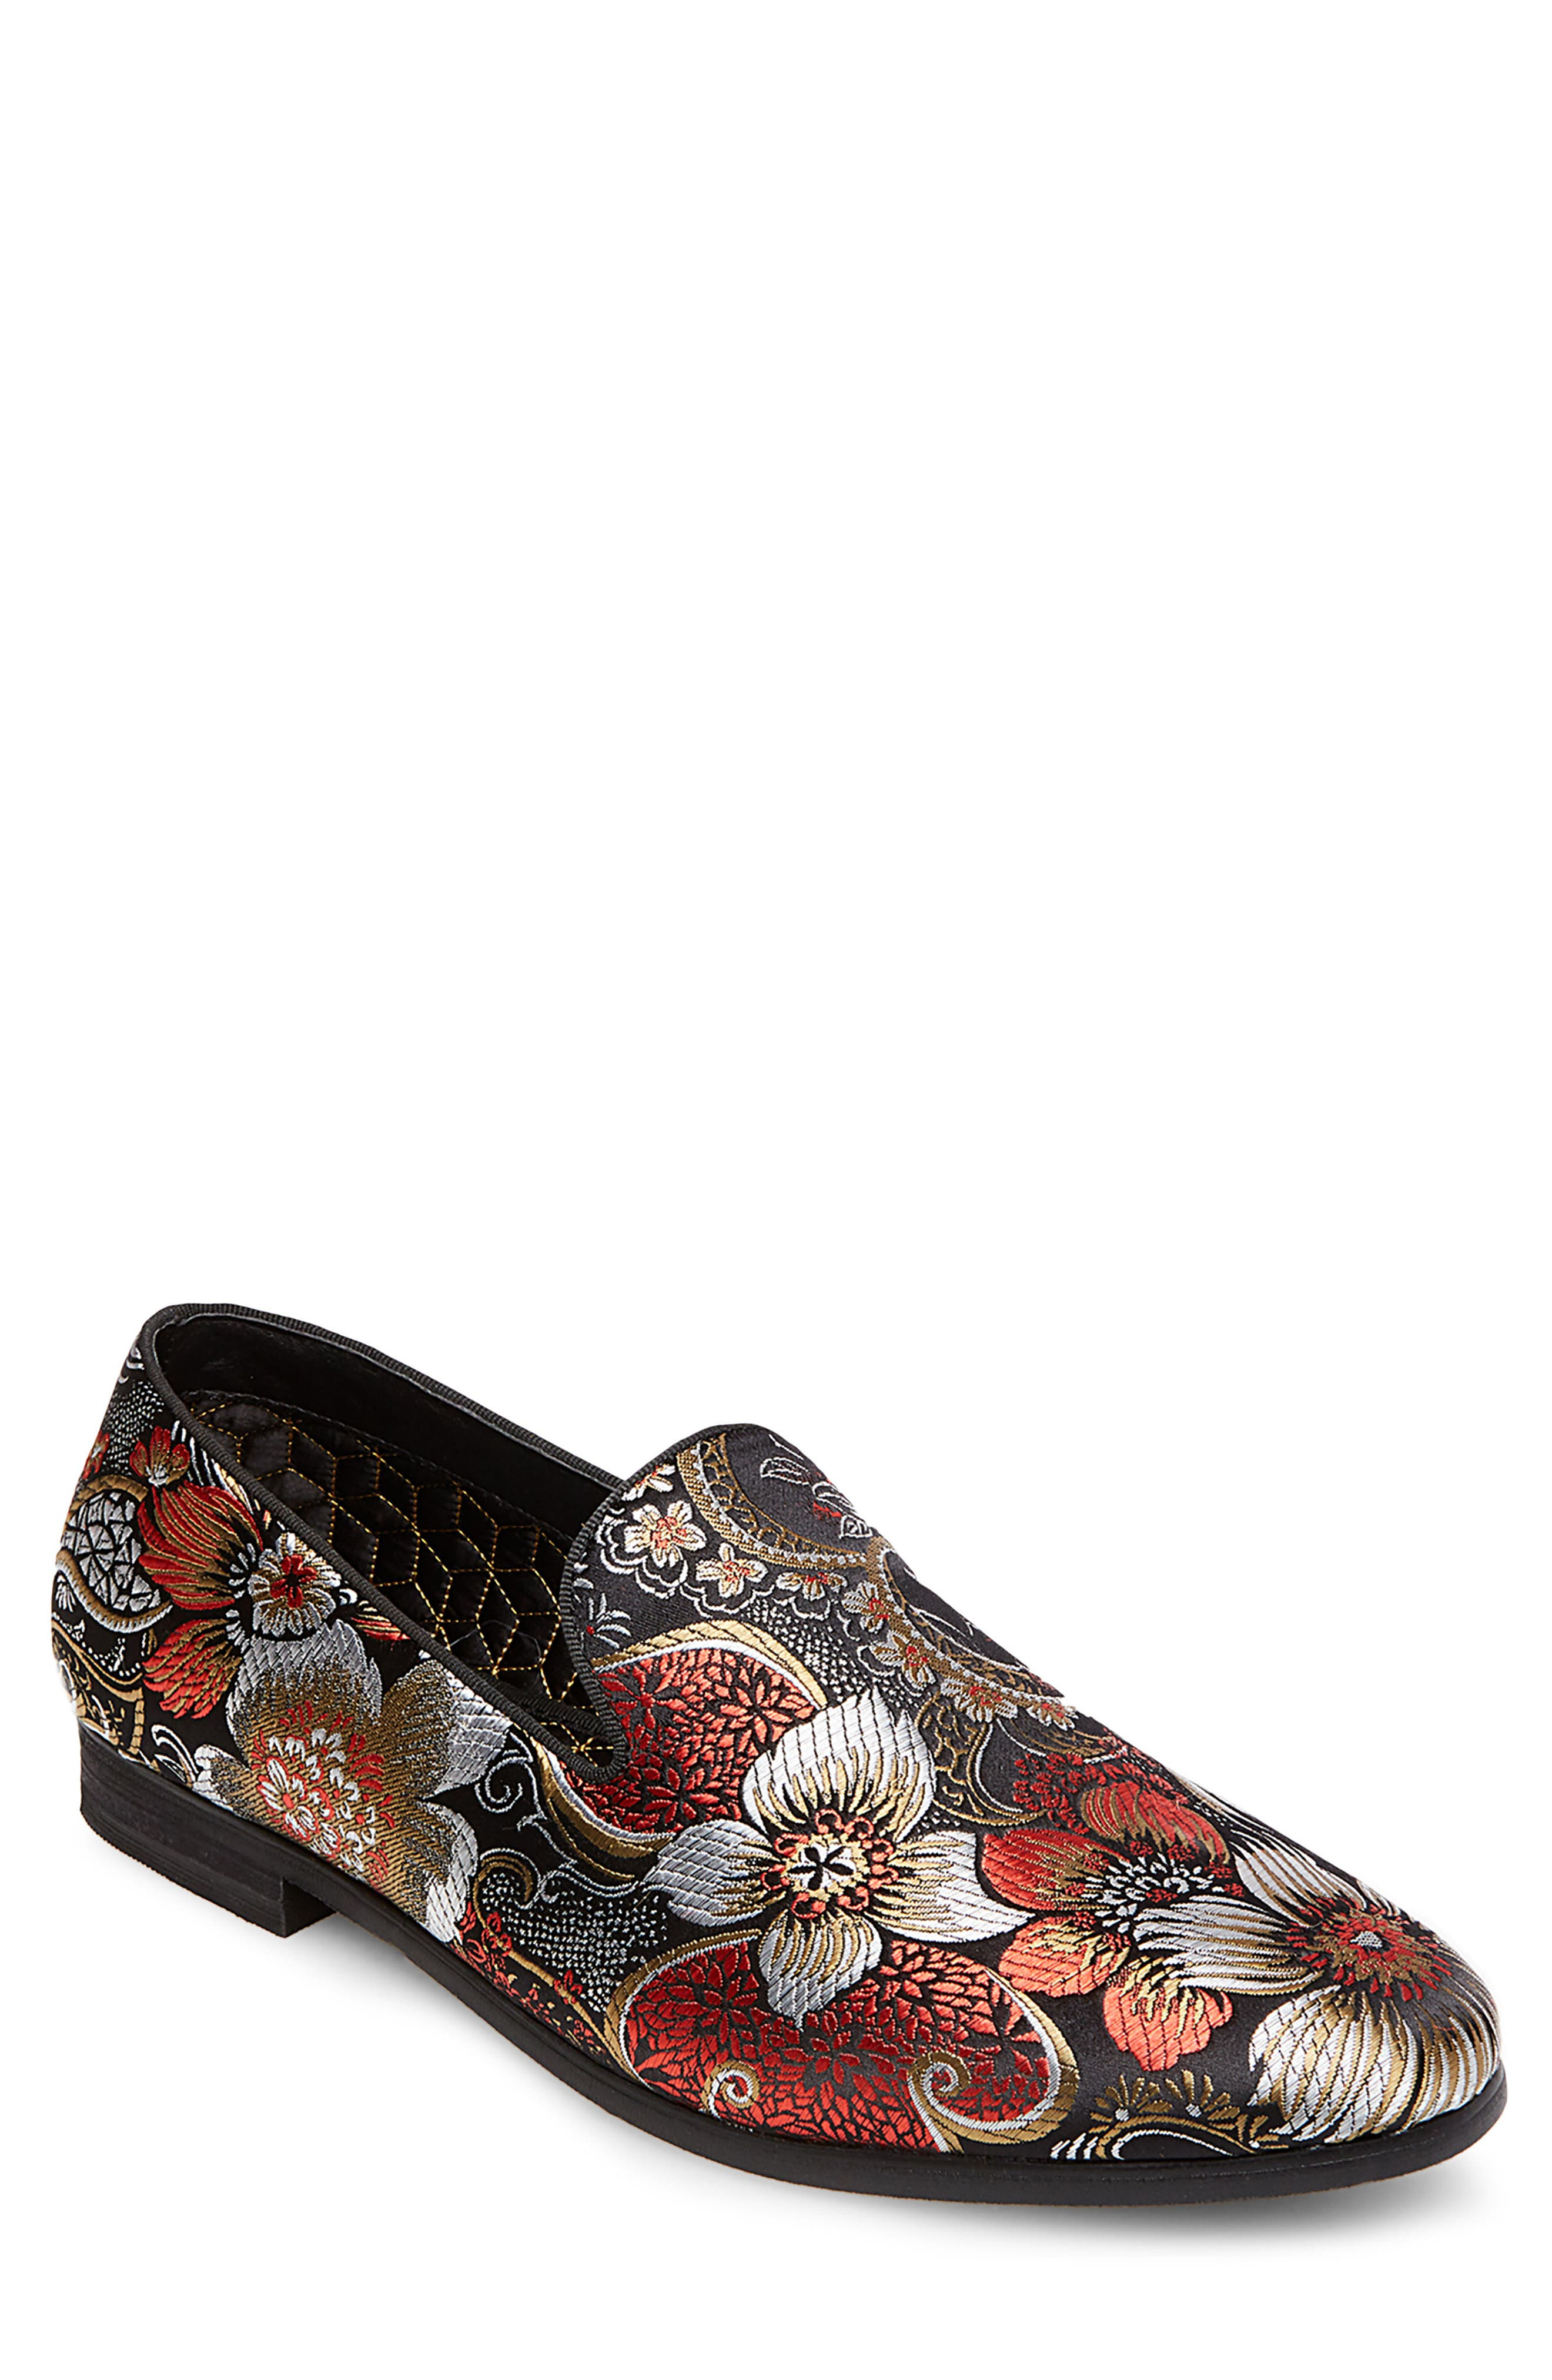 Cypress Venetian Loafer,                         Main,                         color, Red Multi